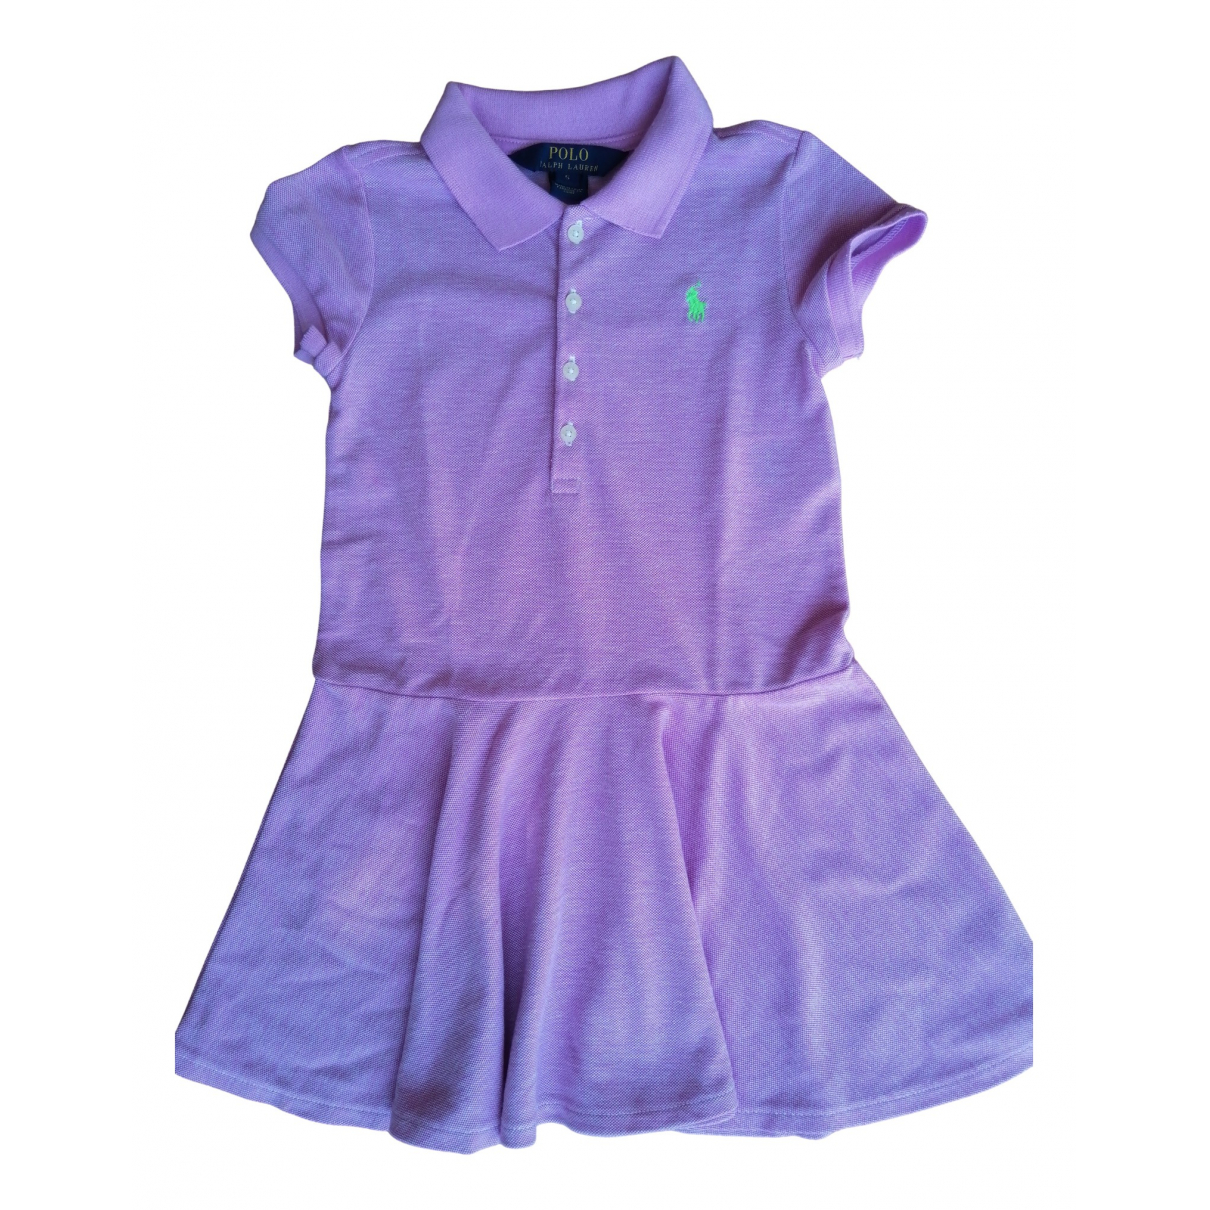 Polo Ralph Lauren N Purple Cotton dress for Kids 5 years - up to 108cm FR